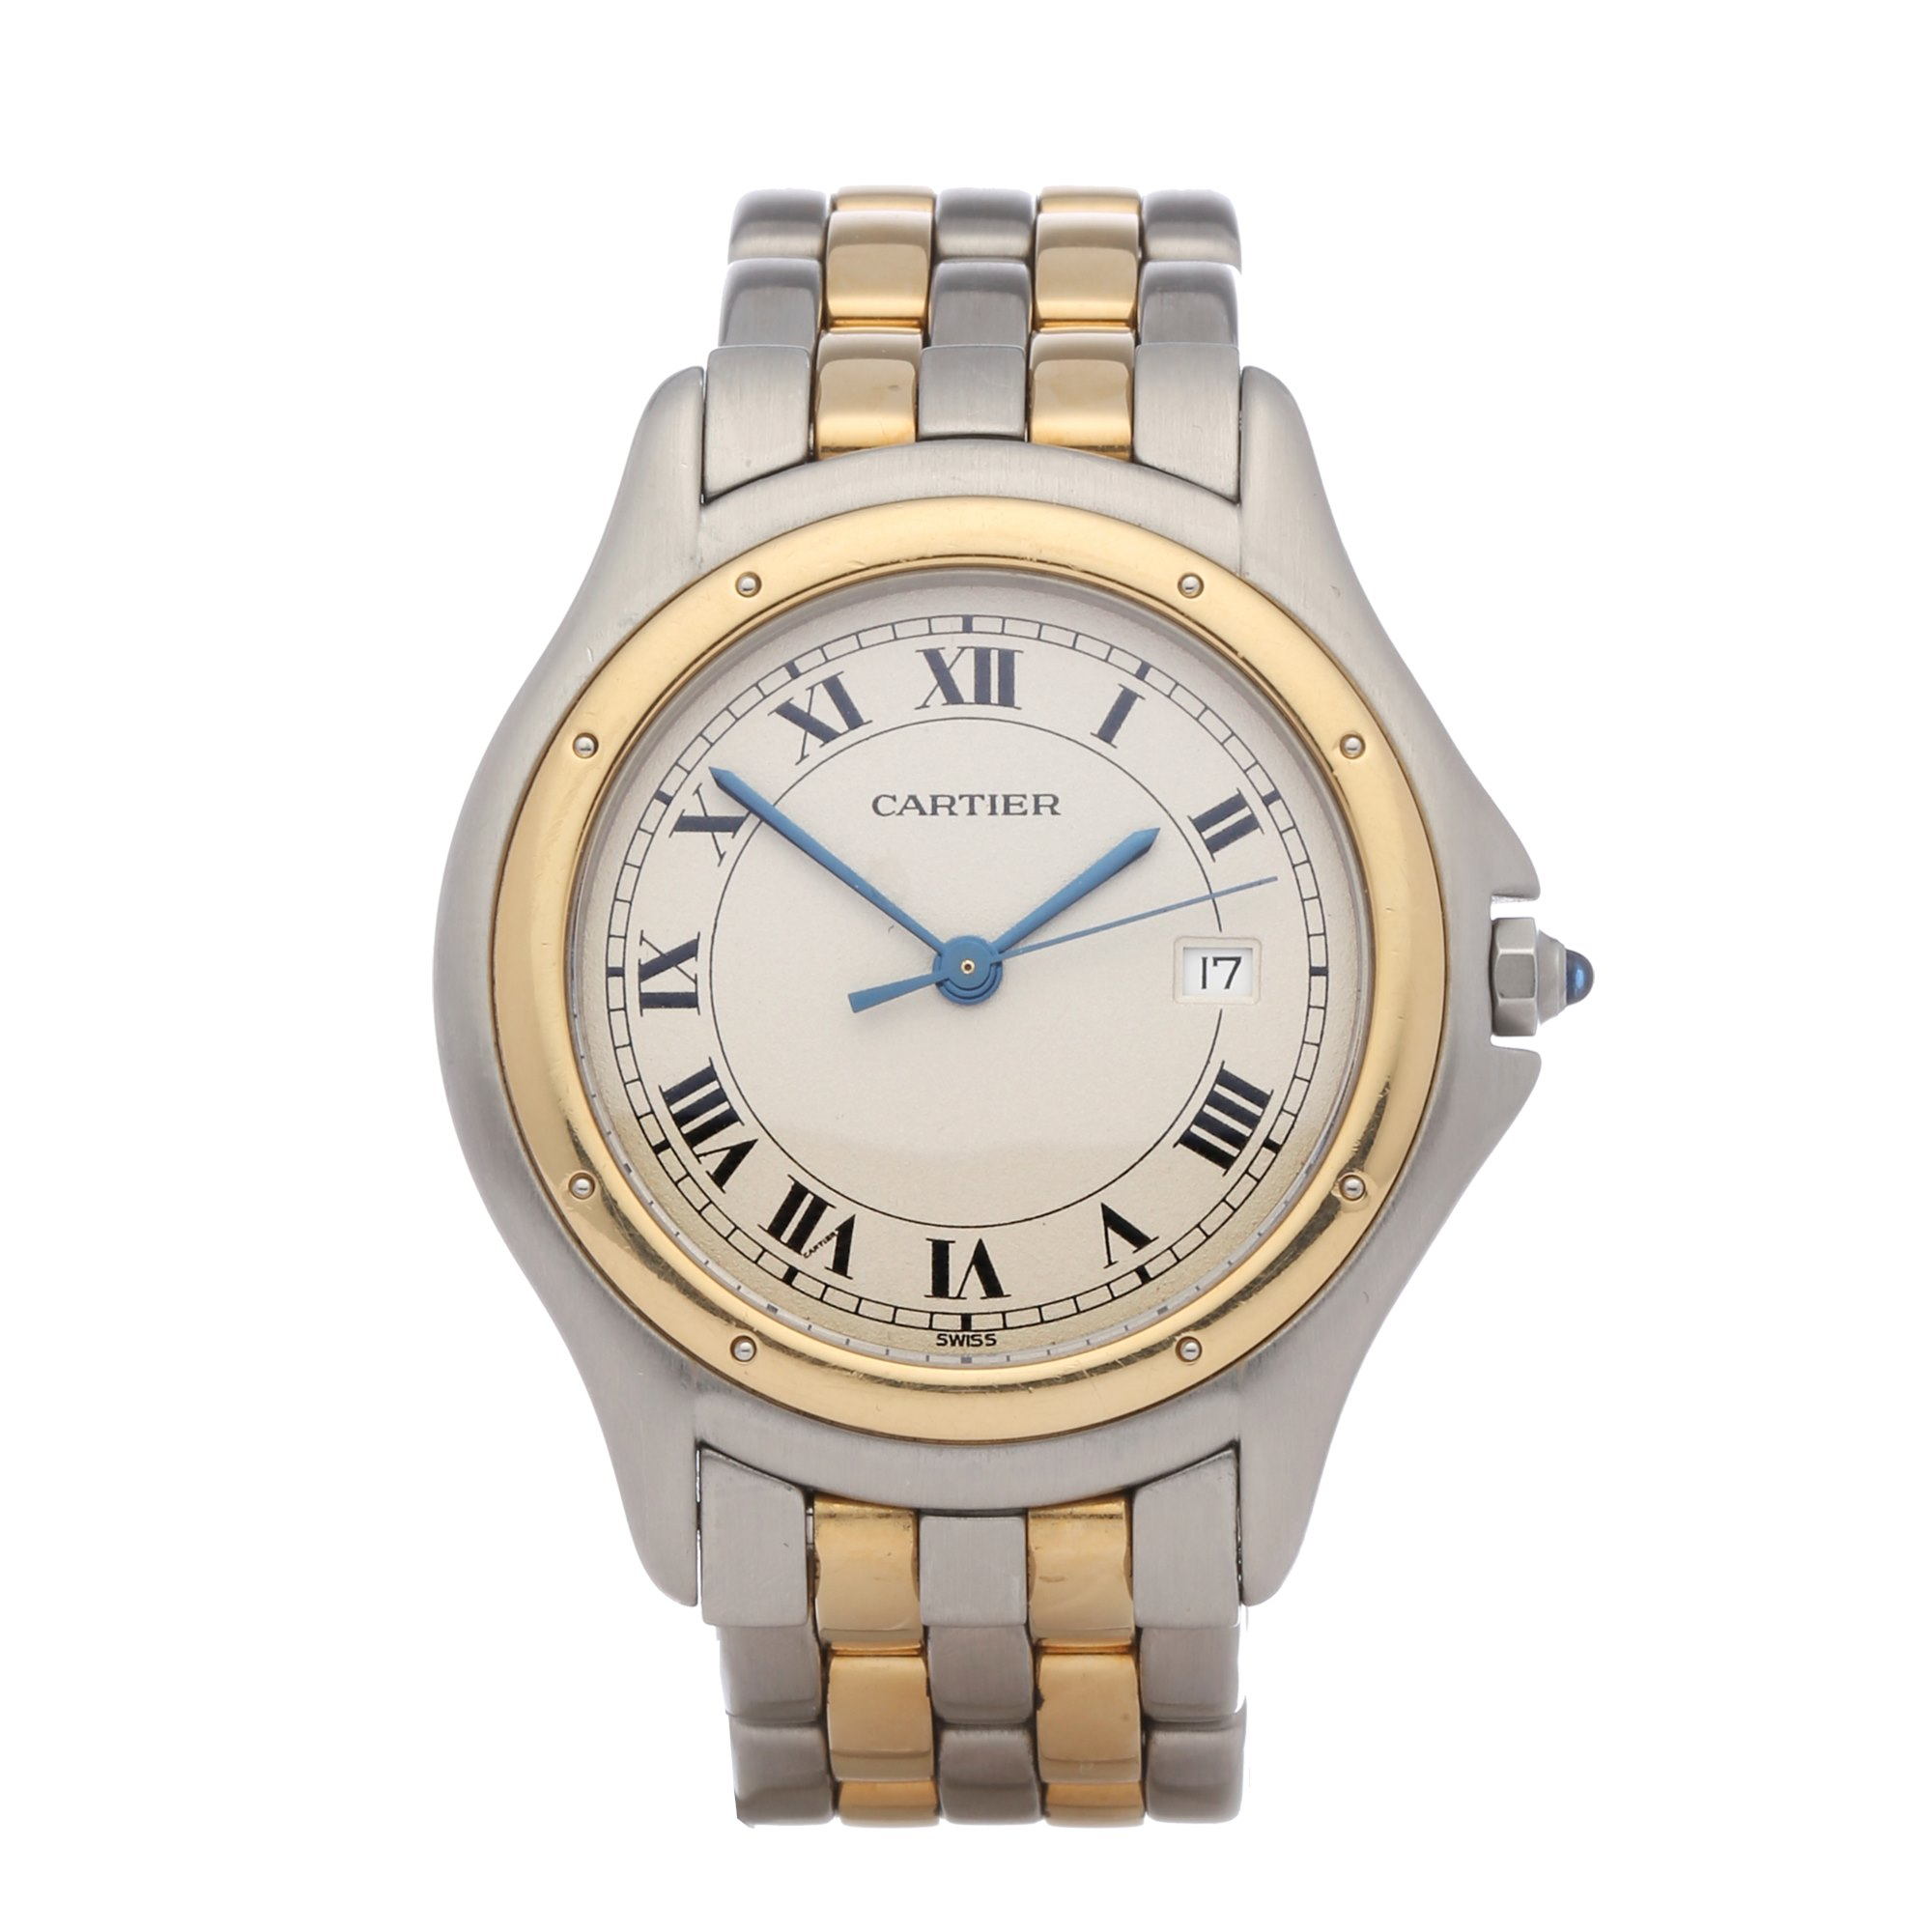 Cartier Panthère 18K Yellow Gold & Stainless Steel 187904